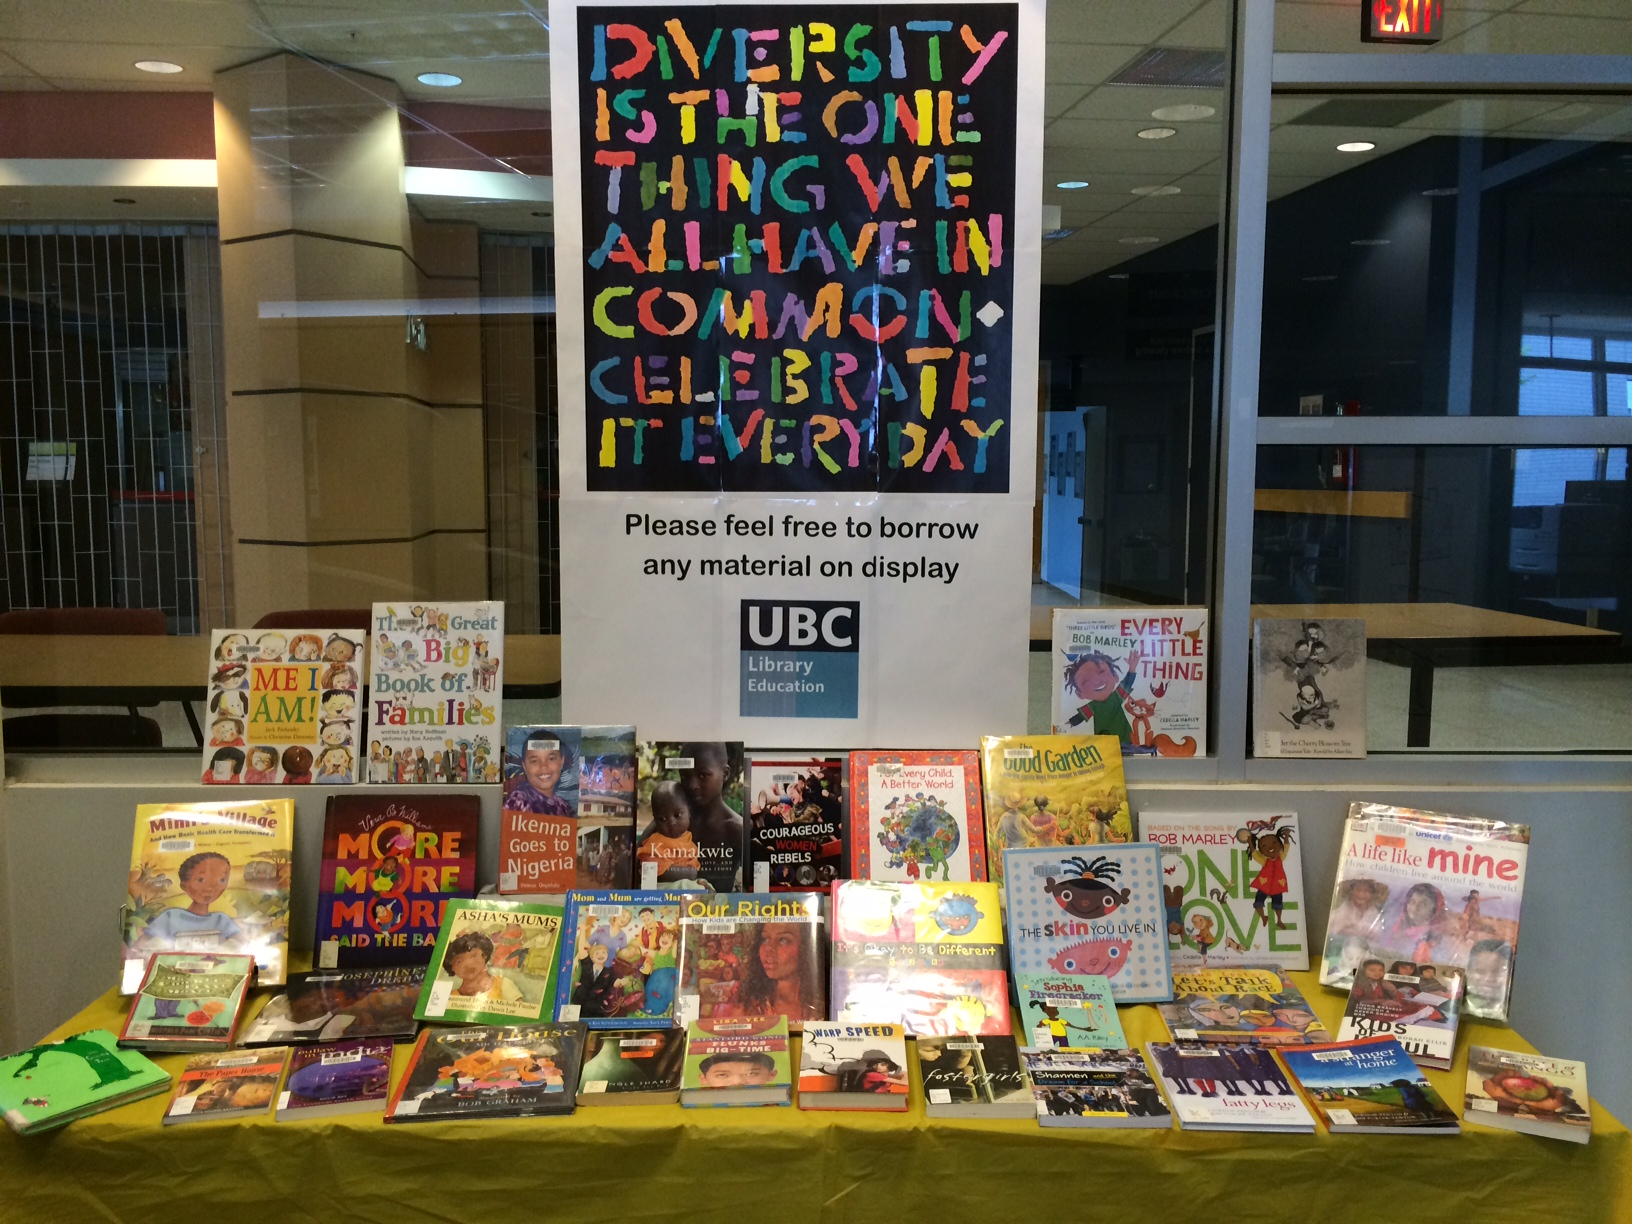 New Display At Education Library Celebrating Diversity